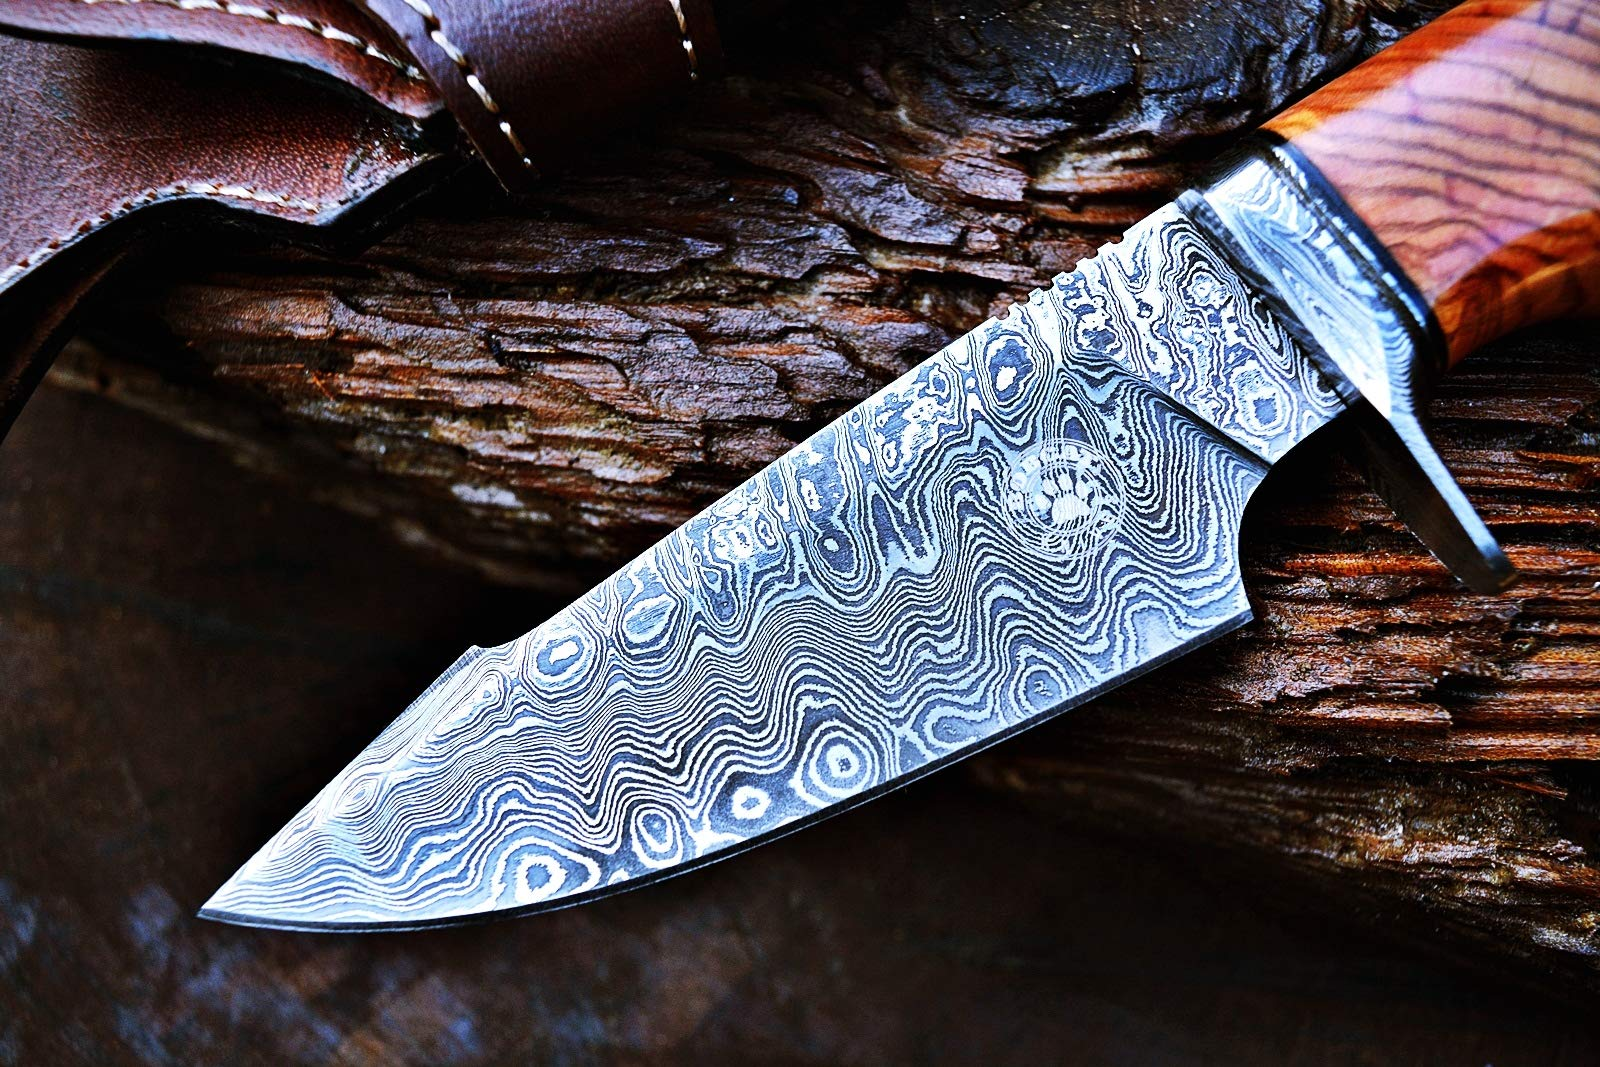 Custom Handmade Hunting Knife Bowie Knife Damascus Steel Survival Knife EDC 10'' Overall Olive Wood with Sheath by Bobcat Knives (Image #8)